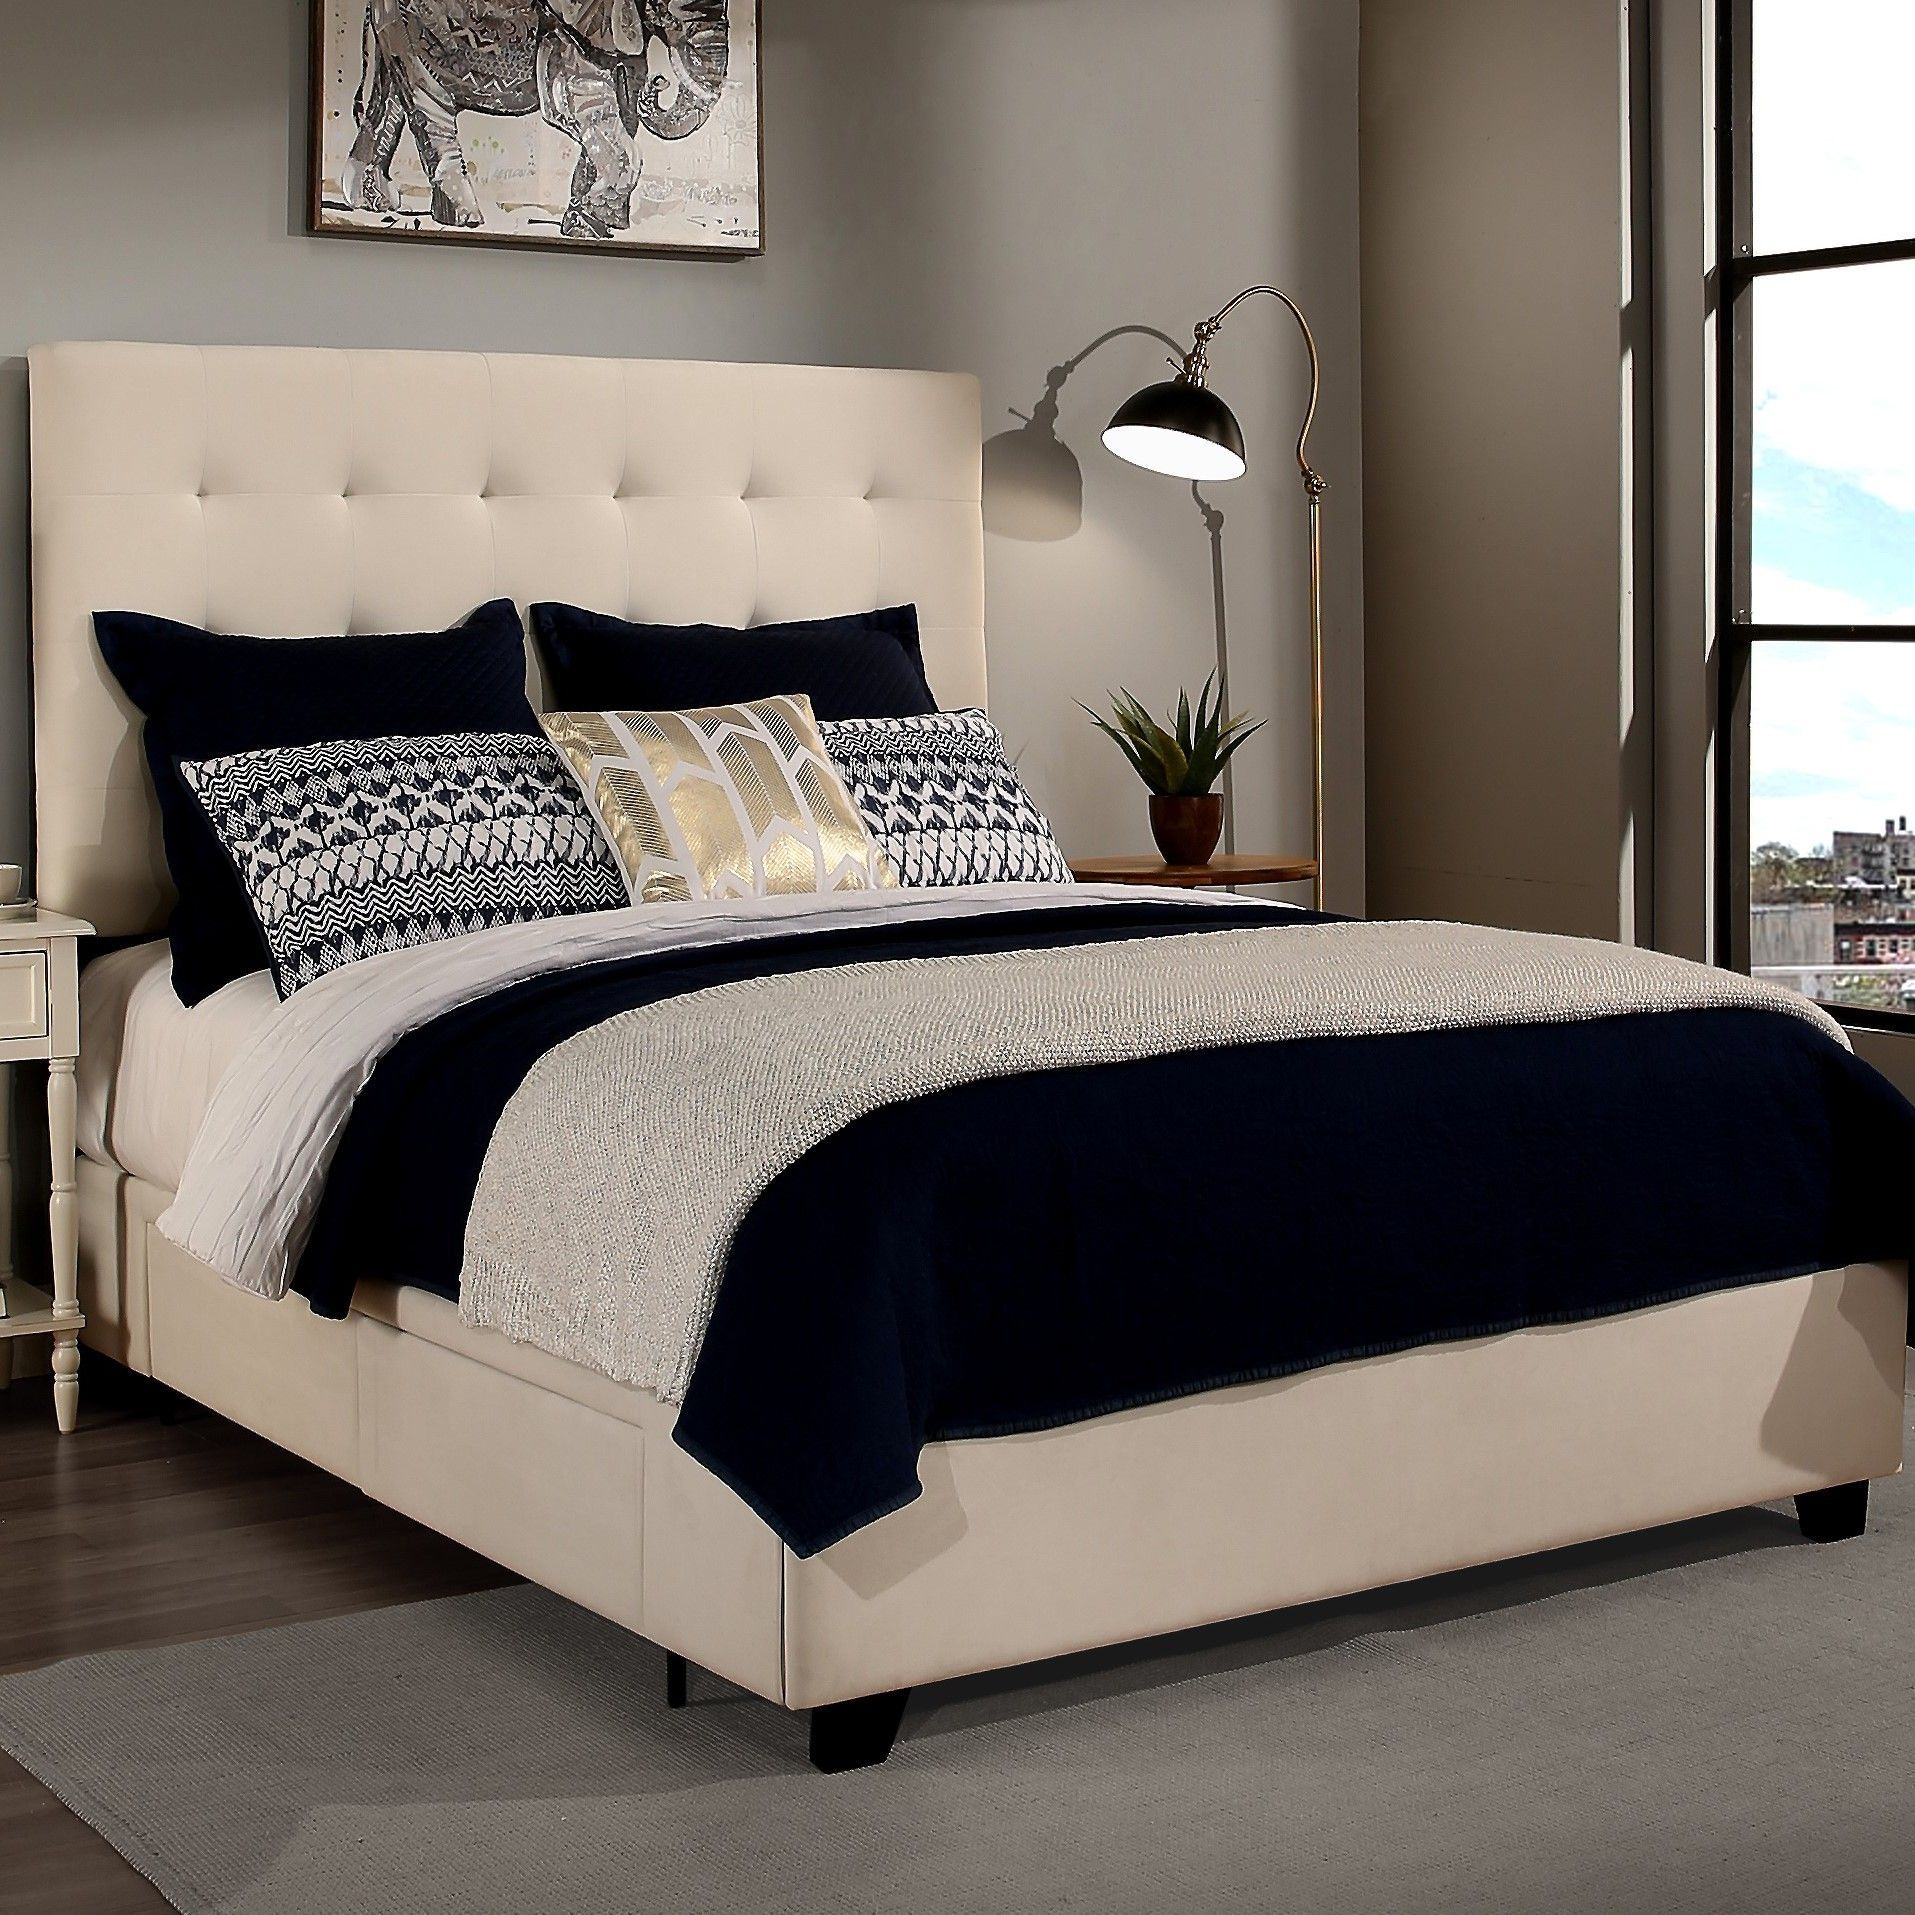 Manhattan Upholstered Storage Platform Bed | Habitaciones niñas ...